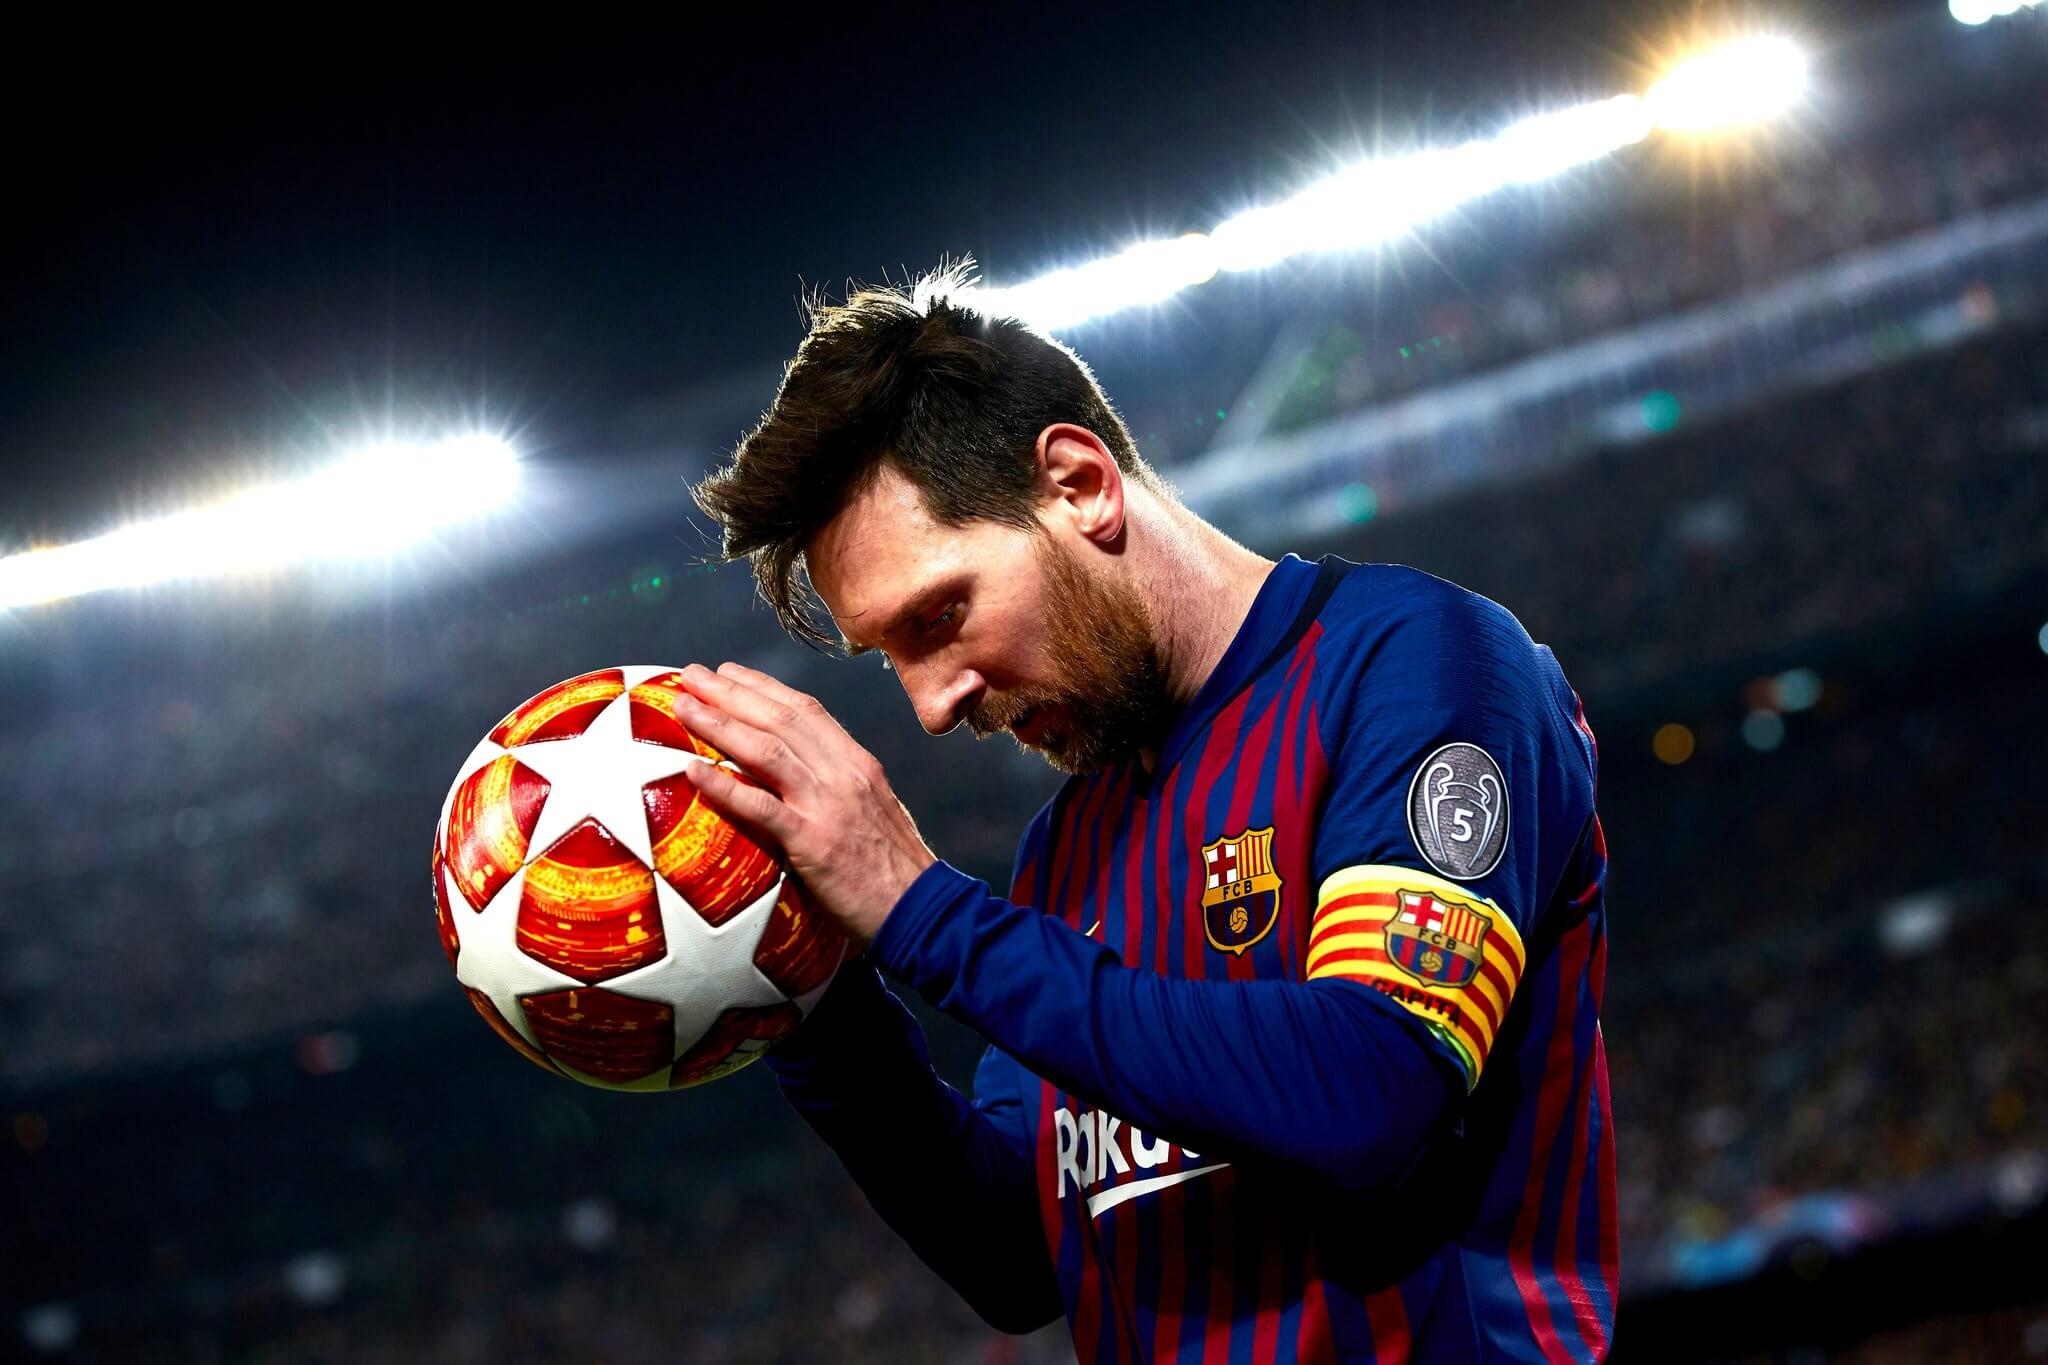 Happy Birthday Messi - Soccer fans from around the world wish happy birthday to lionel messi